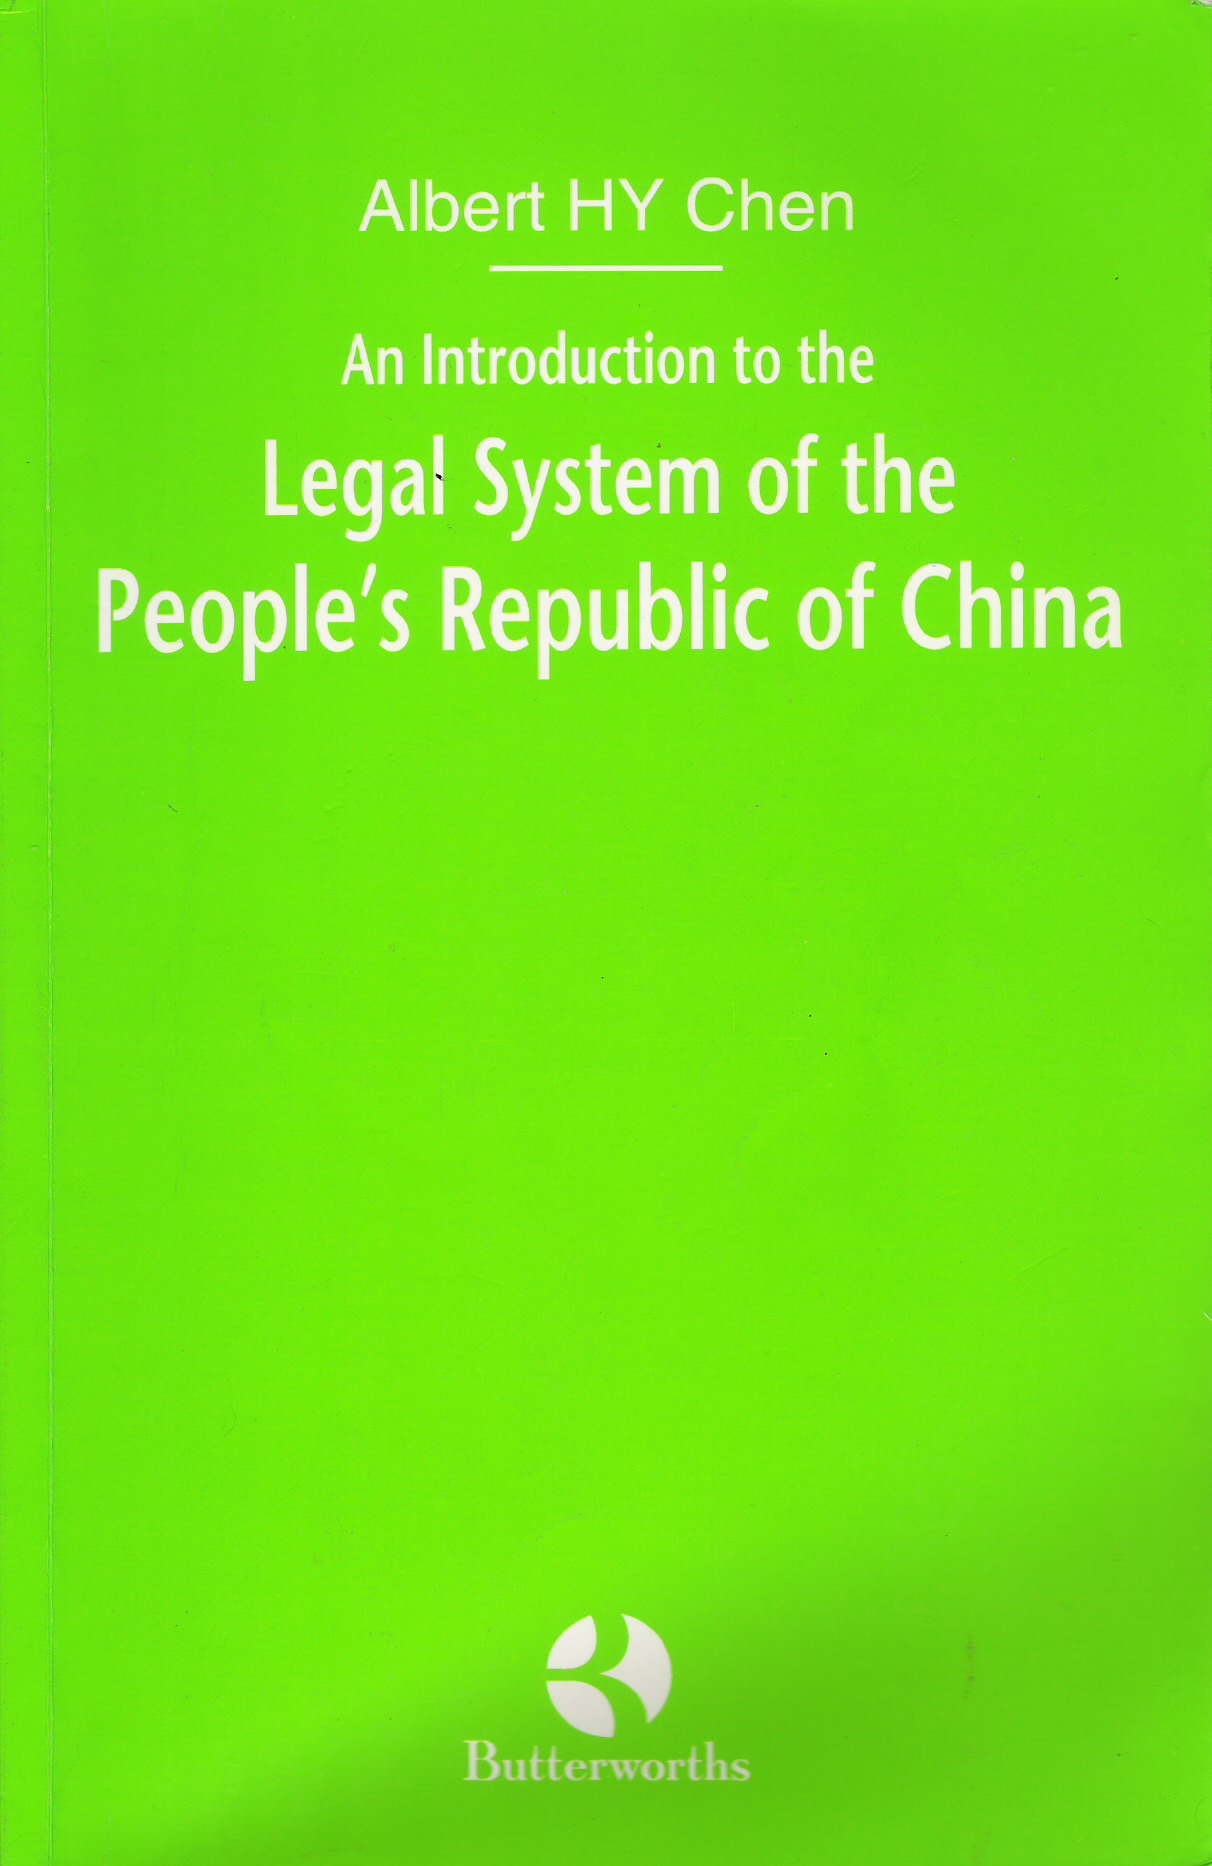 An Introduction to the Legal System of the People's Republic of China